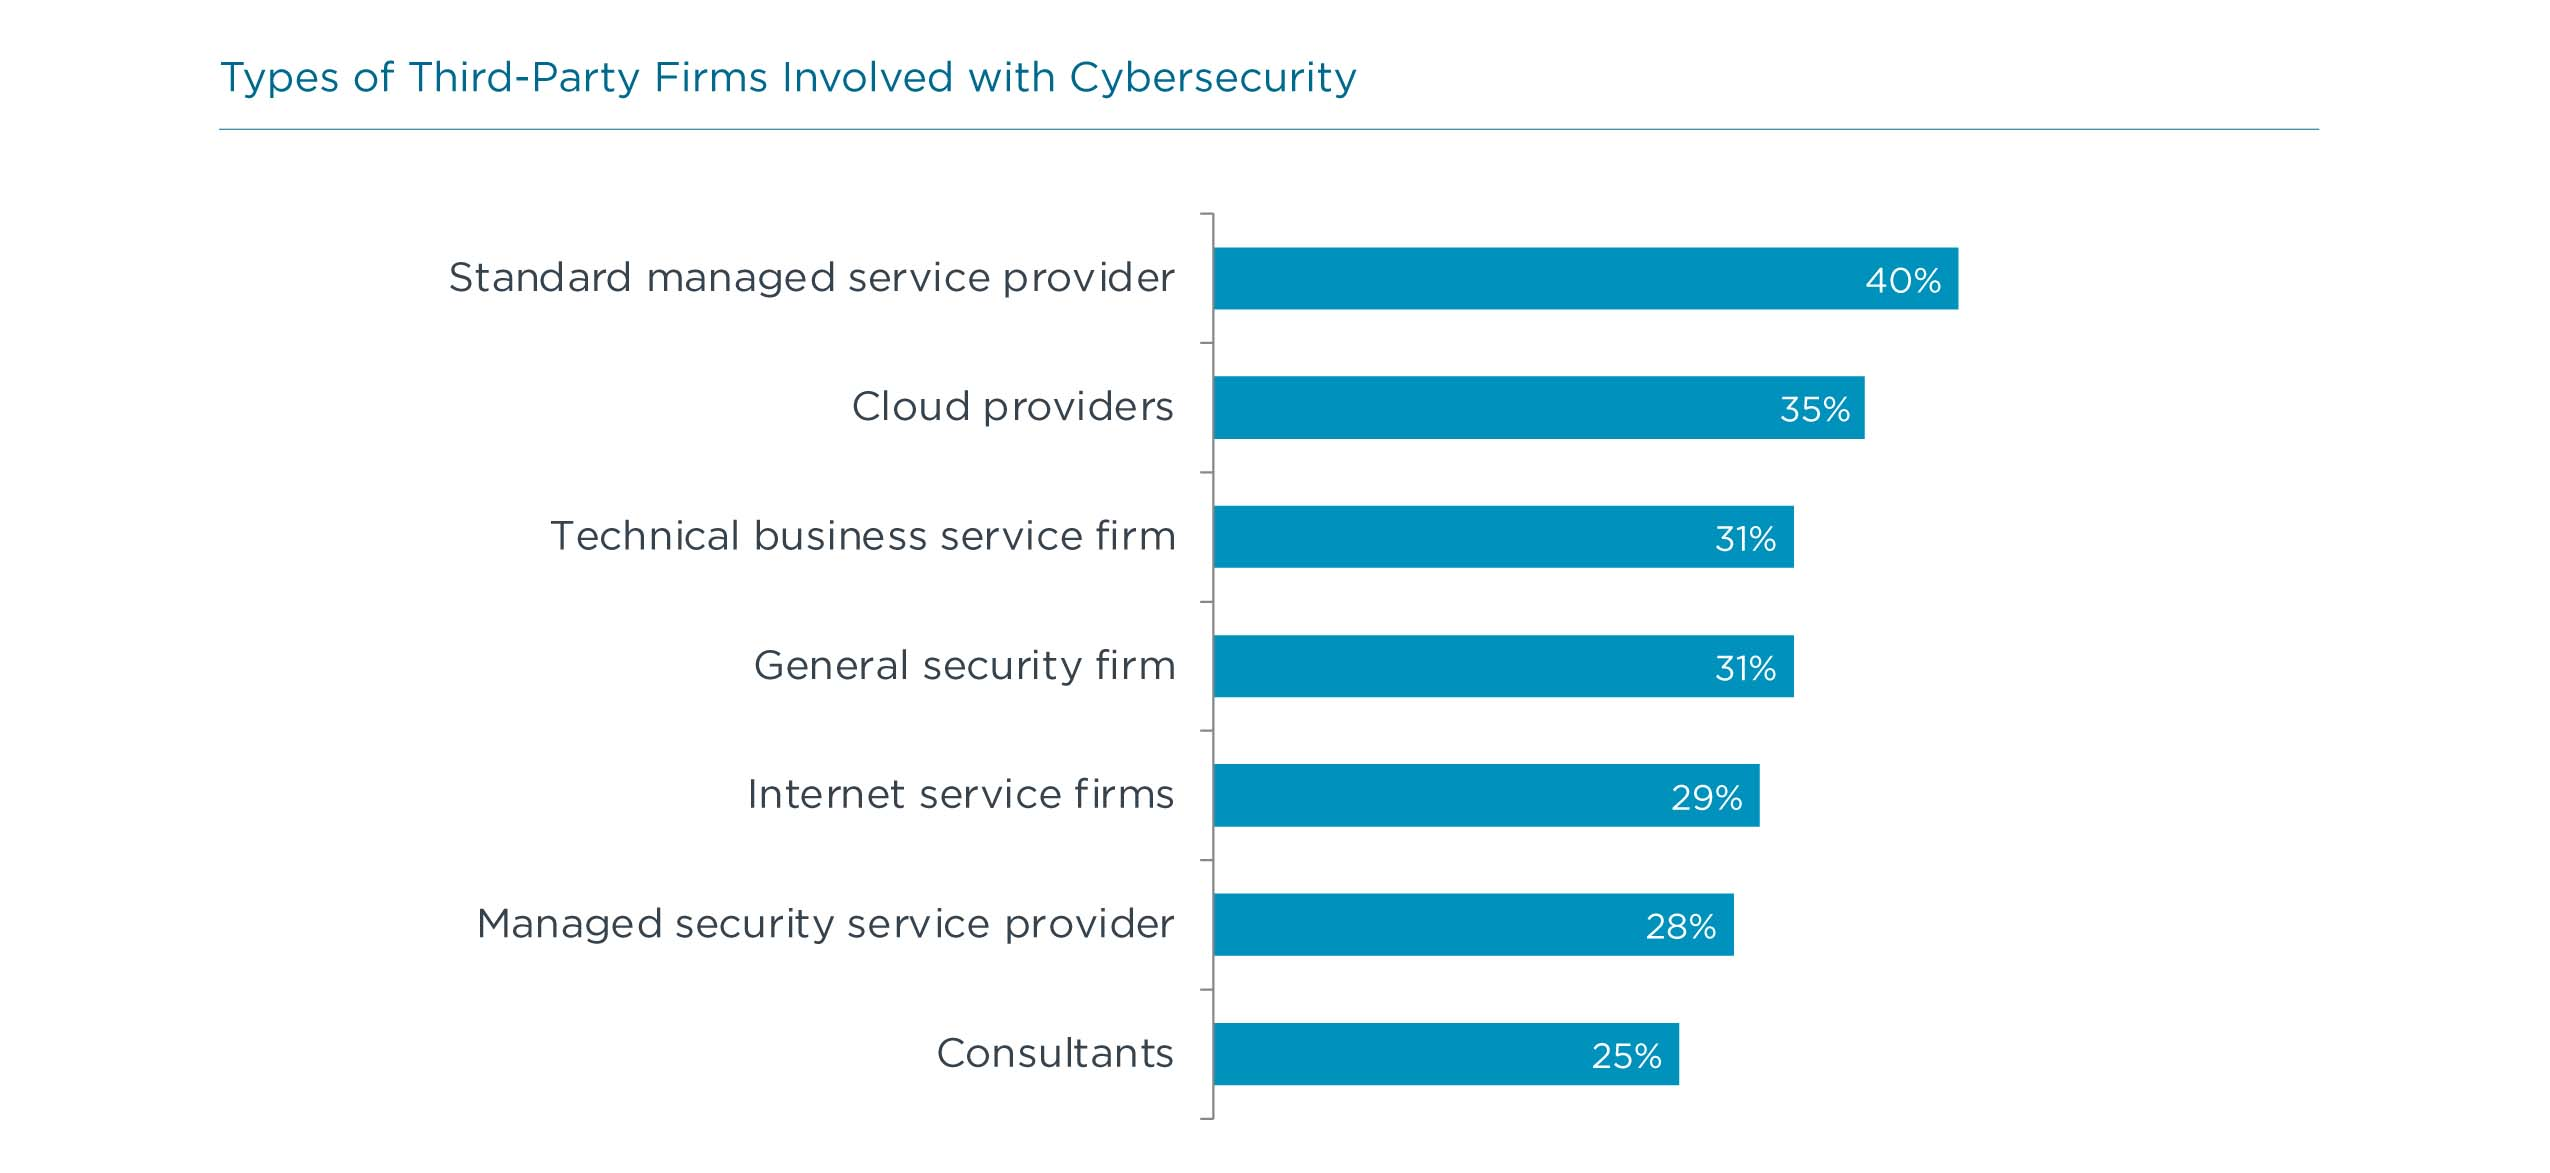 Types of Third-Party Firms Involved with Cybersecurity